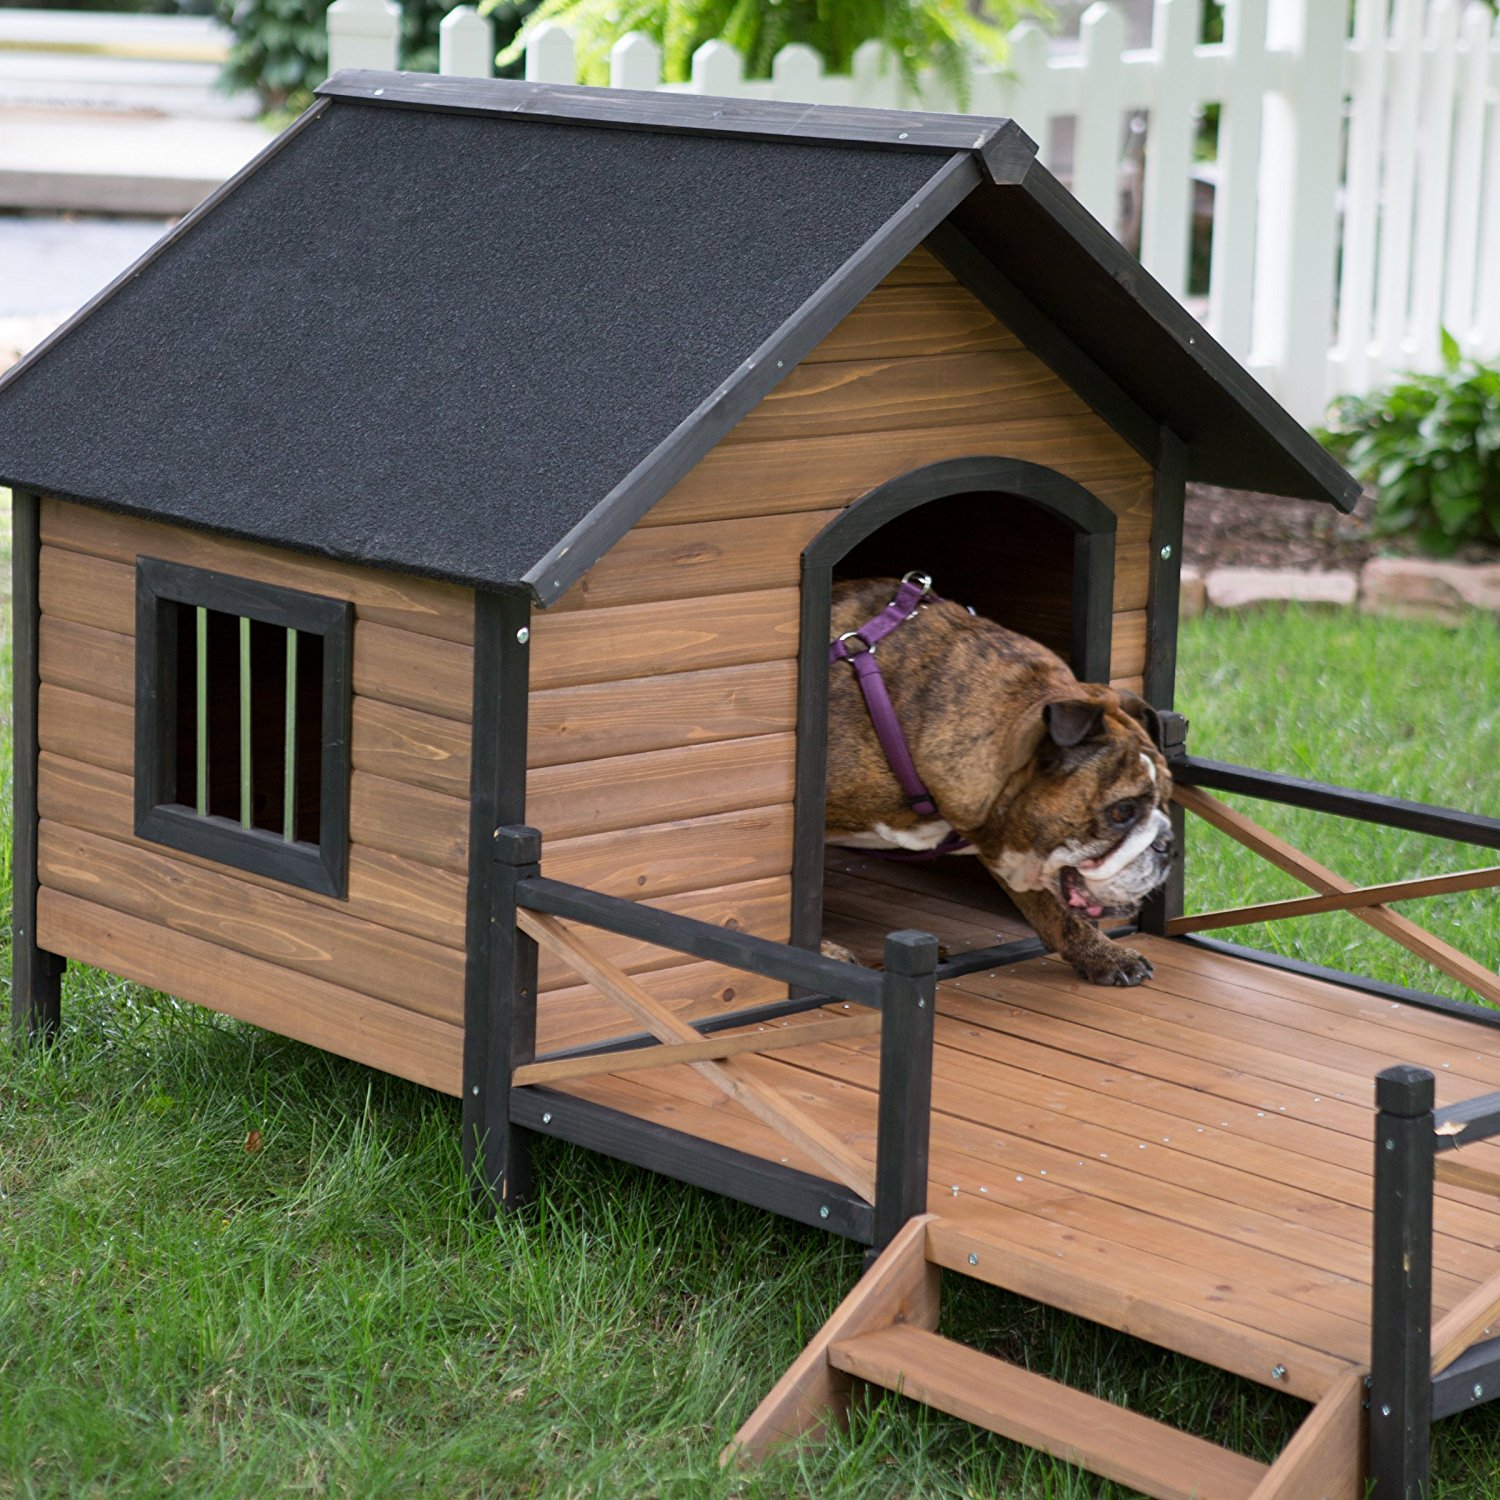 Home Design Ideas For Dogs: Large Dog House Lodge With Porch Deck